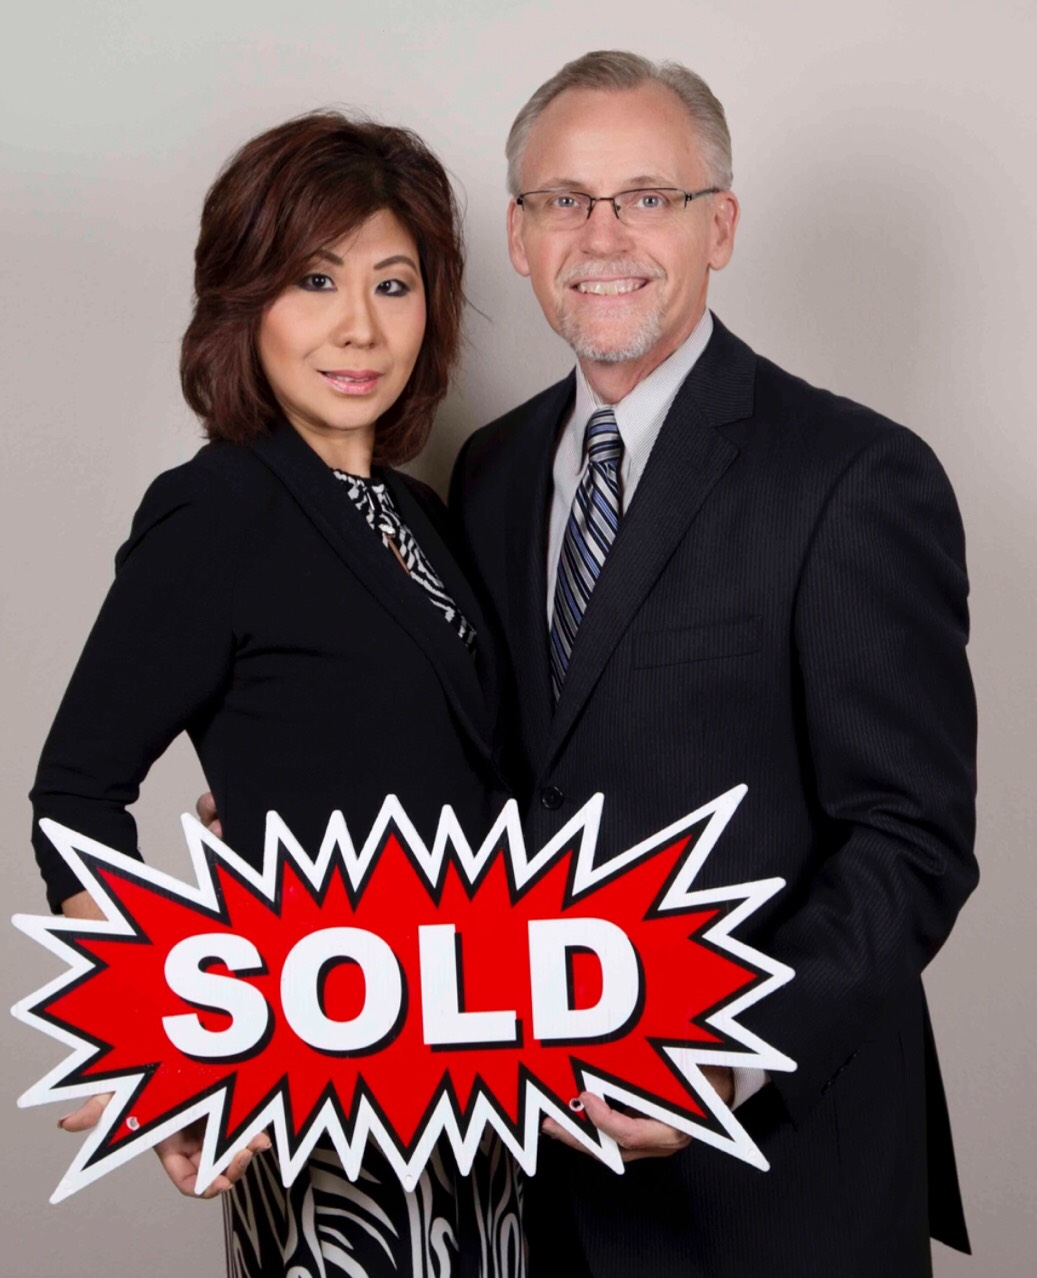 Sell My House Fast Houston - Fast Cash for Houses